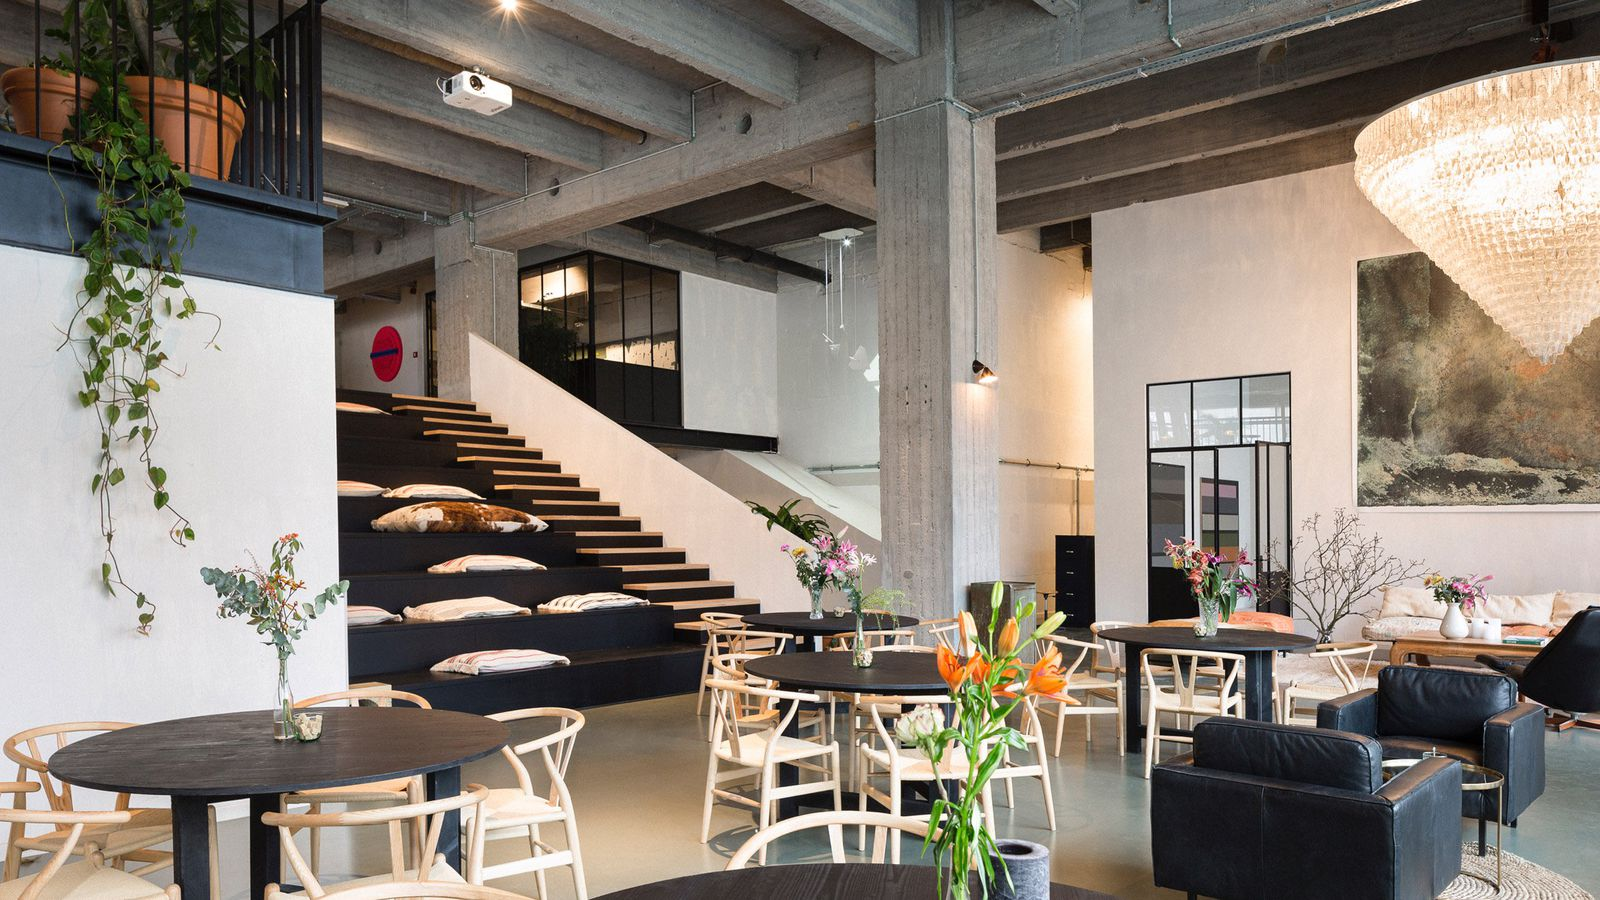 NYCs High Line Inspired This Sleek Coworking Space In